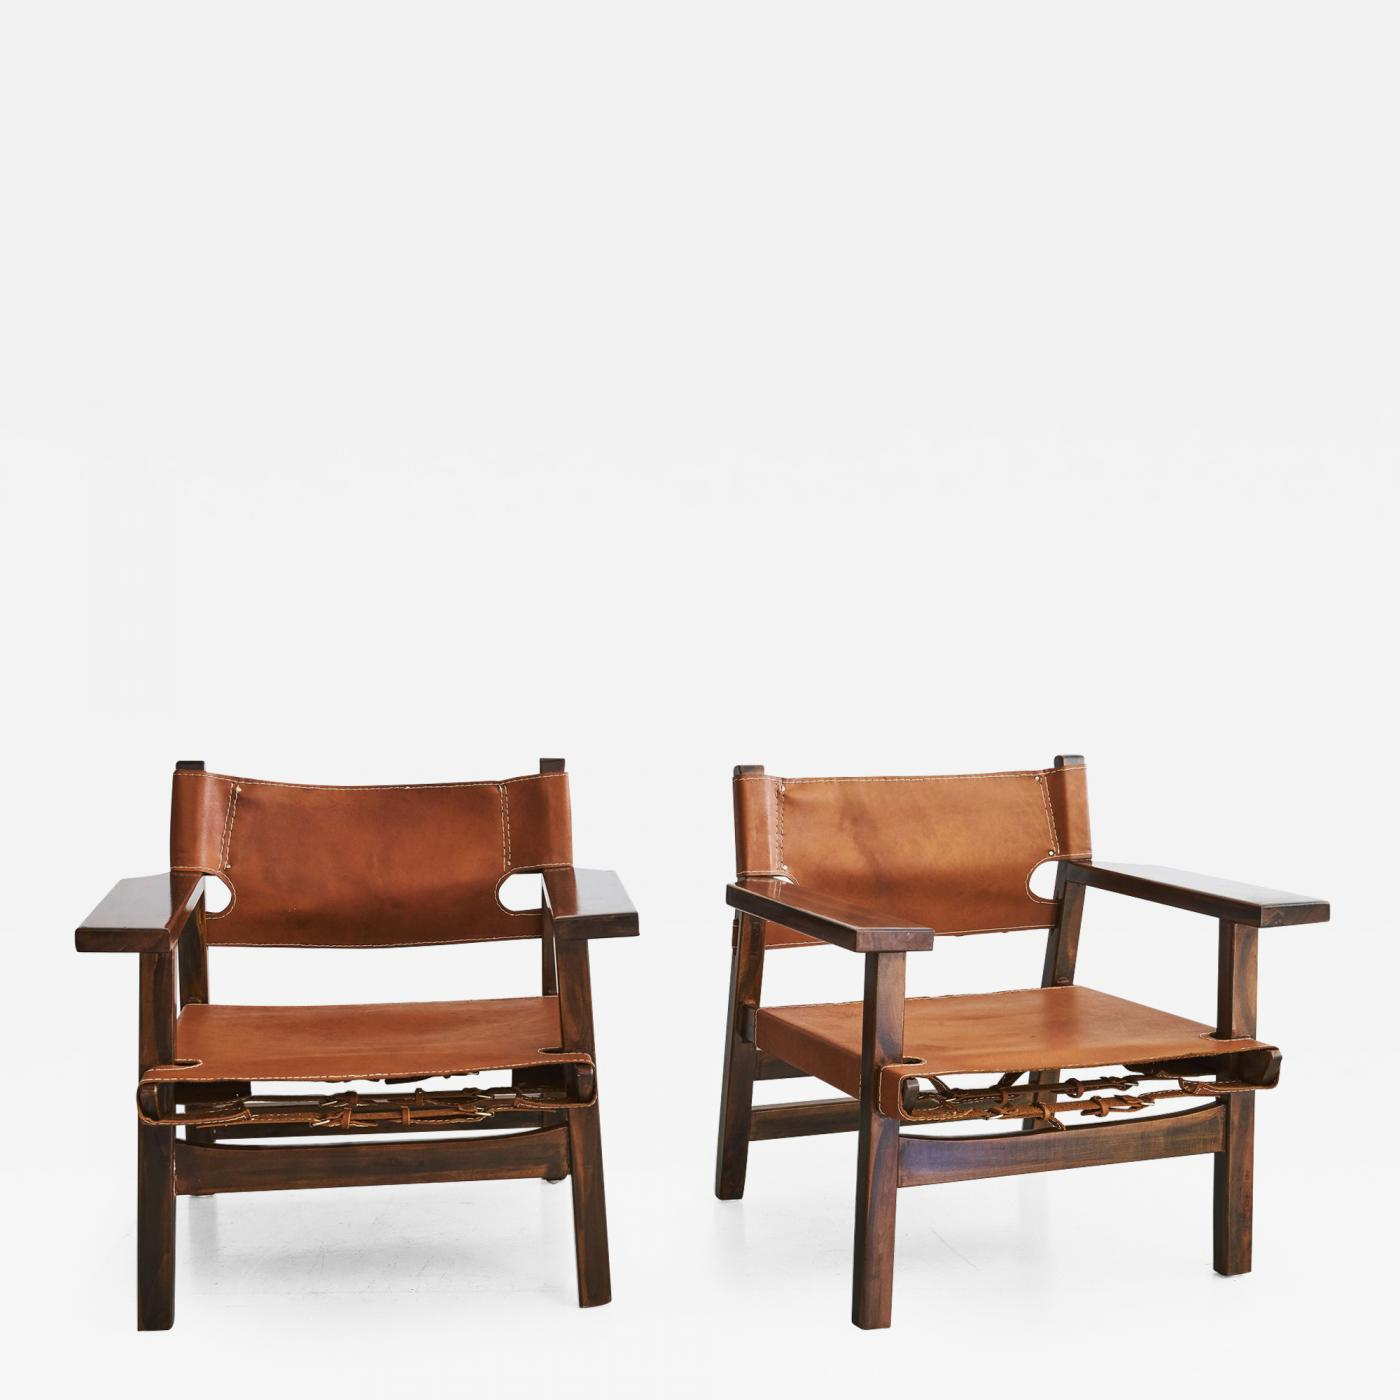 Borge Mogensen Leather Campaign Chairs